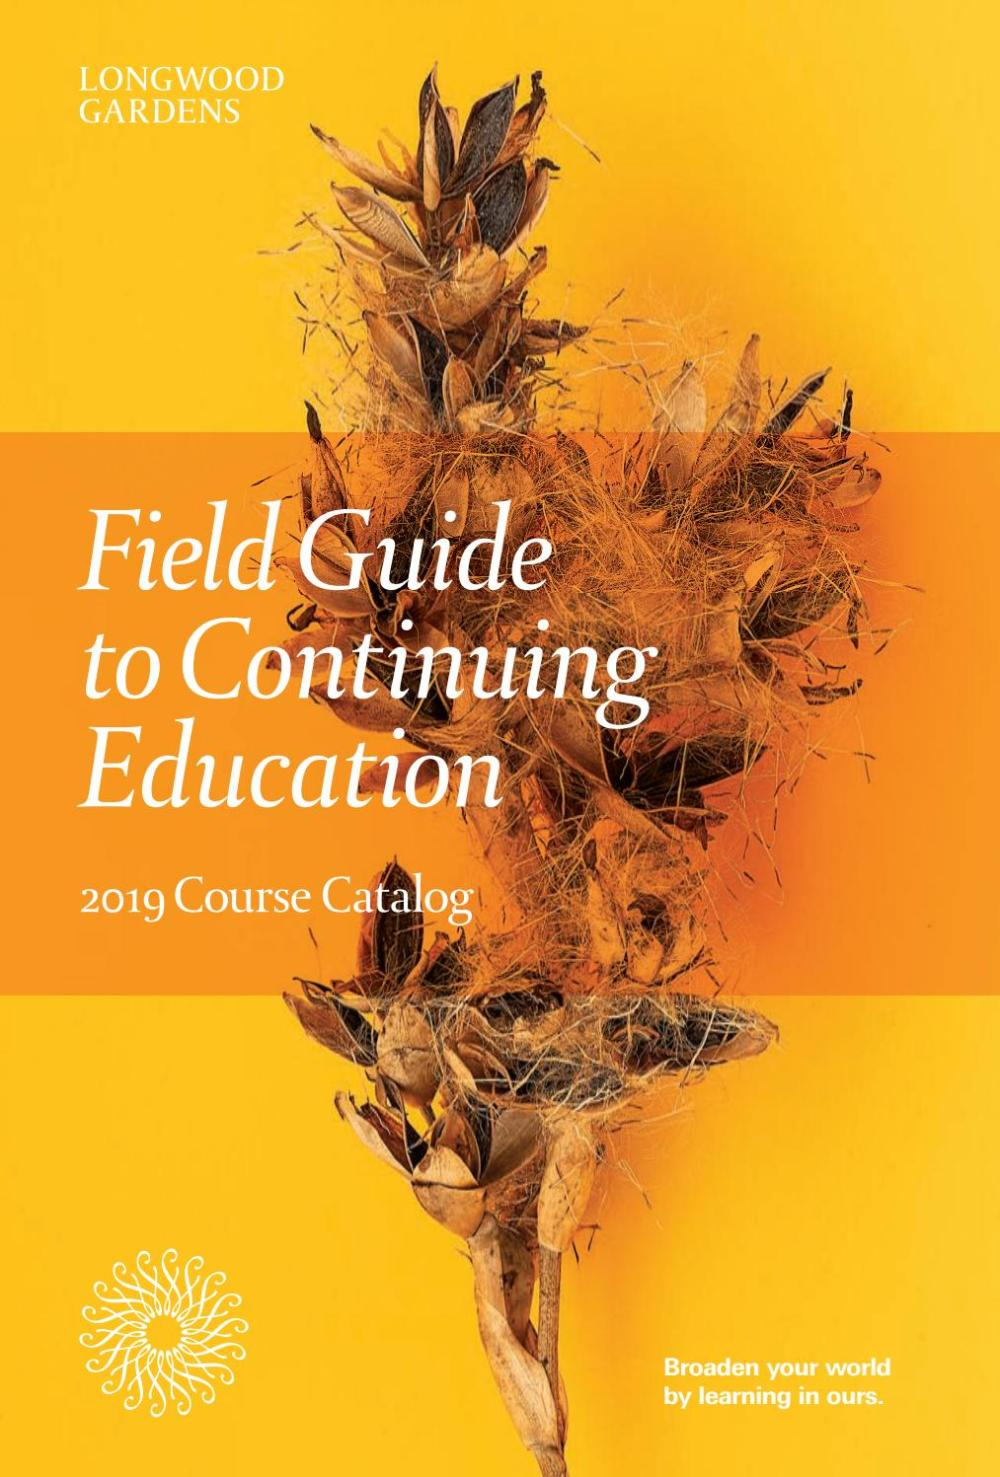 medium resolution of field guide to continuing education 2019 course catalog by longwood gardens issuu